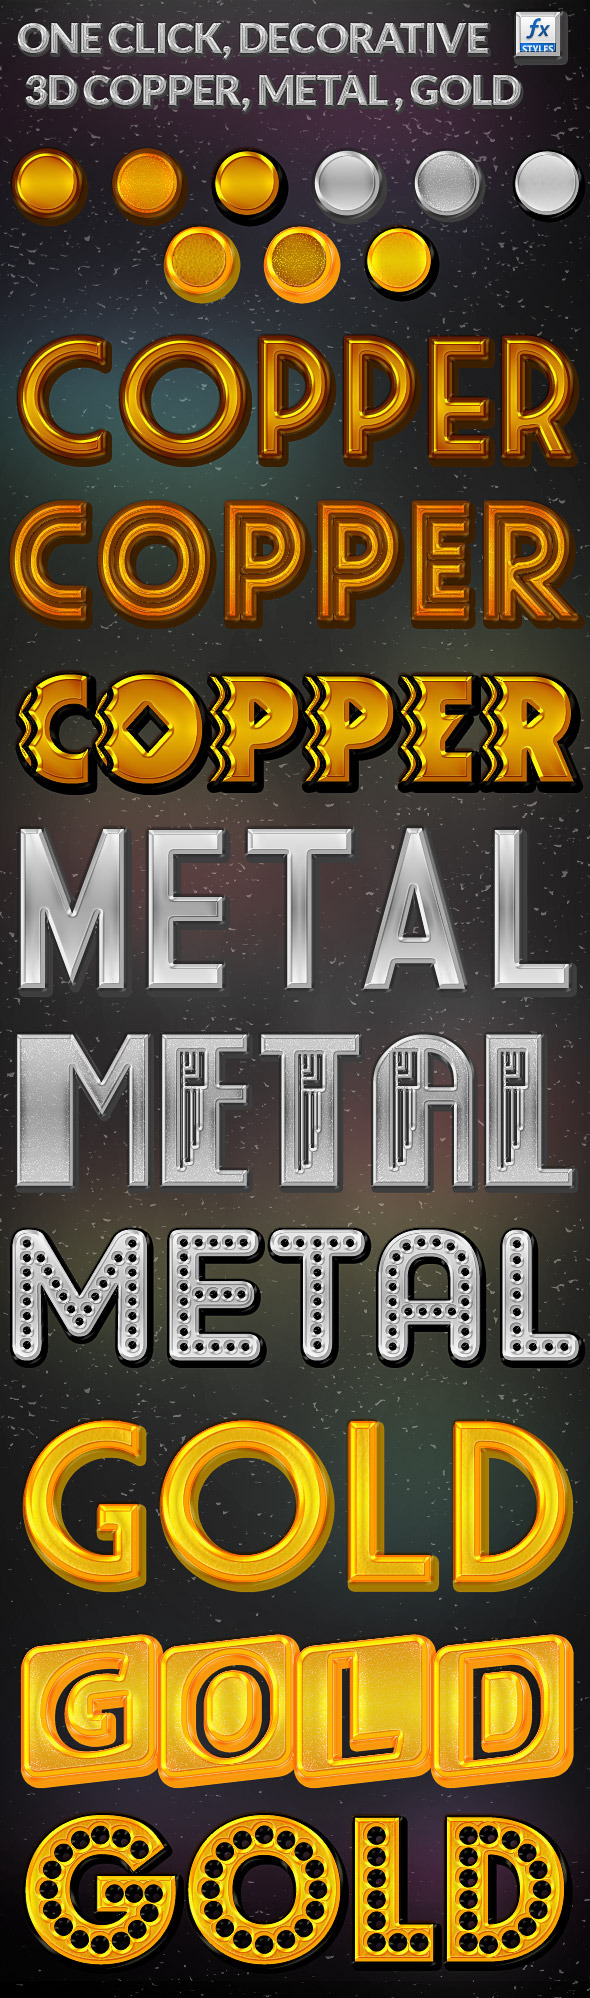 3D Decorative Copper, Metal, Gold  - Text Effects Styles